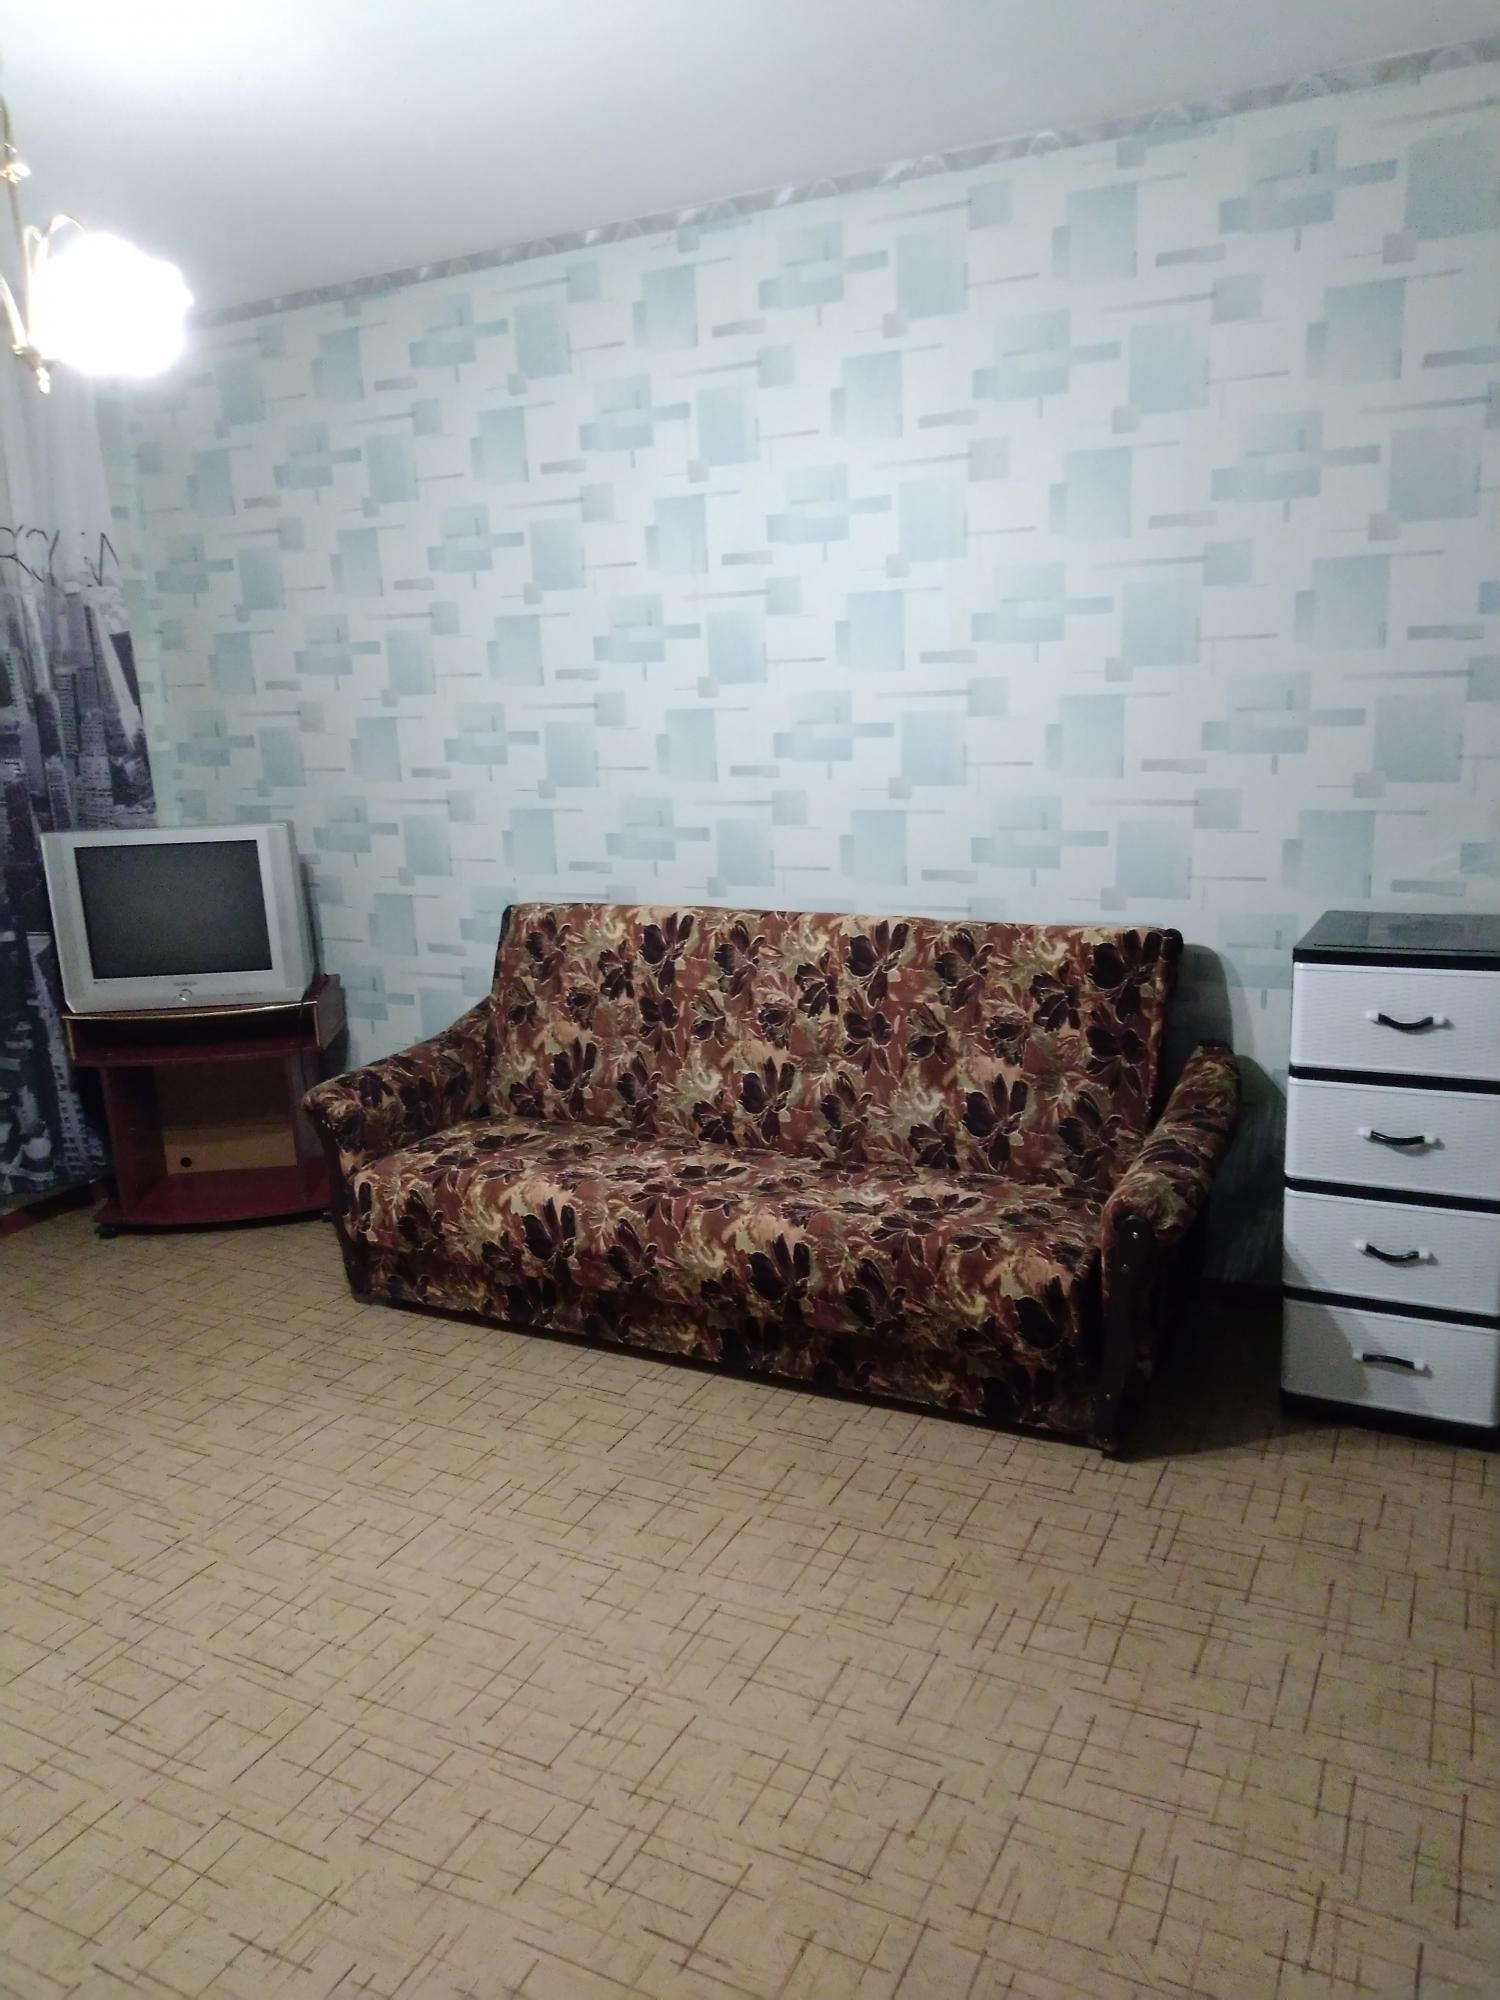 Apartment, 1 room, 41 m2 in Moscow 89629338809 buy 2